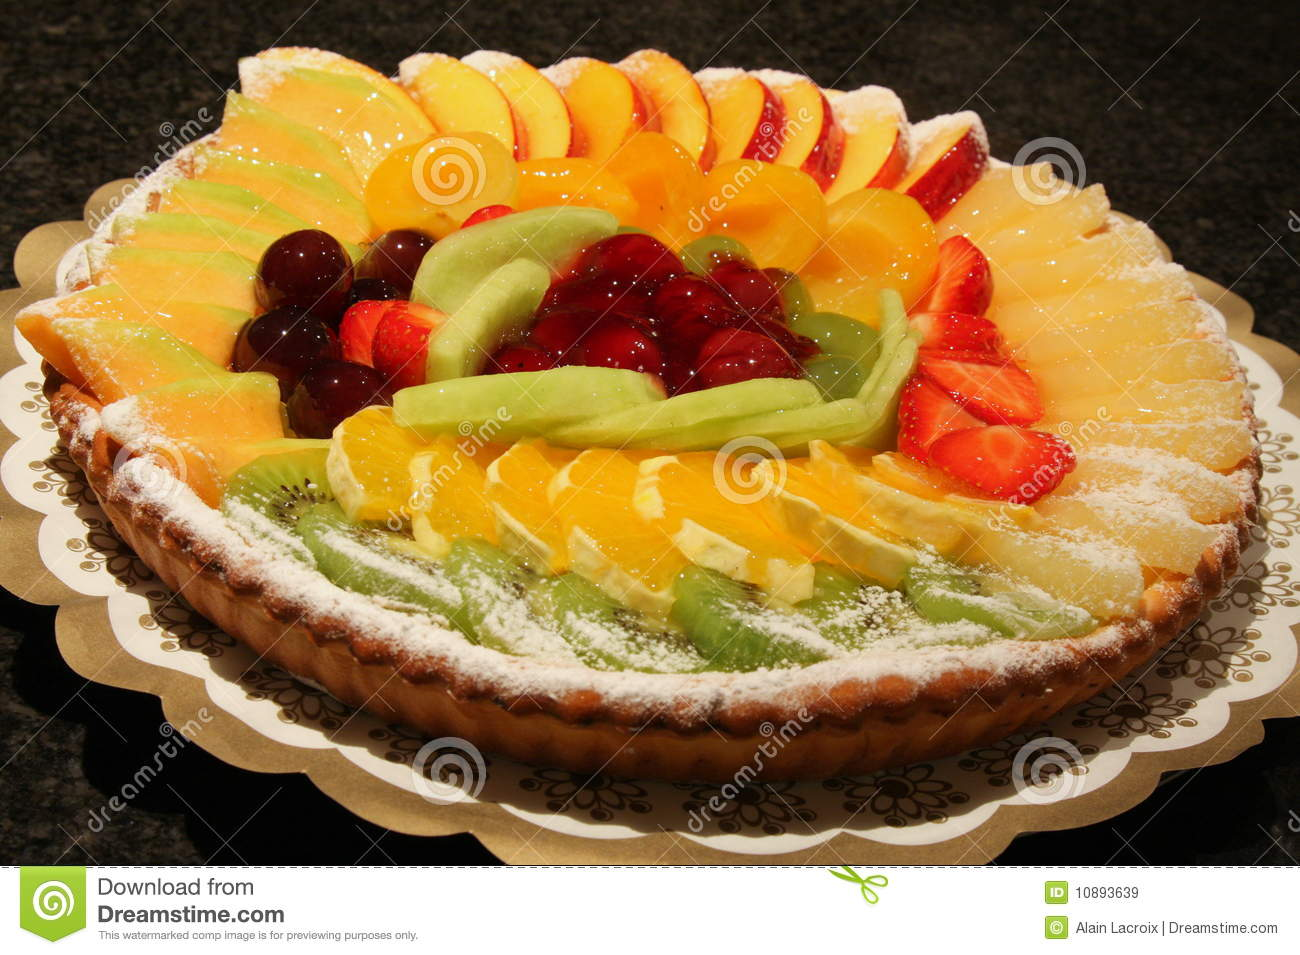 What Is More Fattening Cake Or Pie